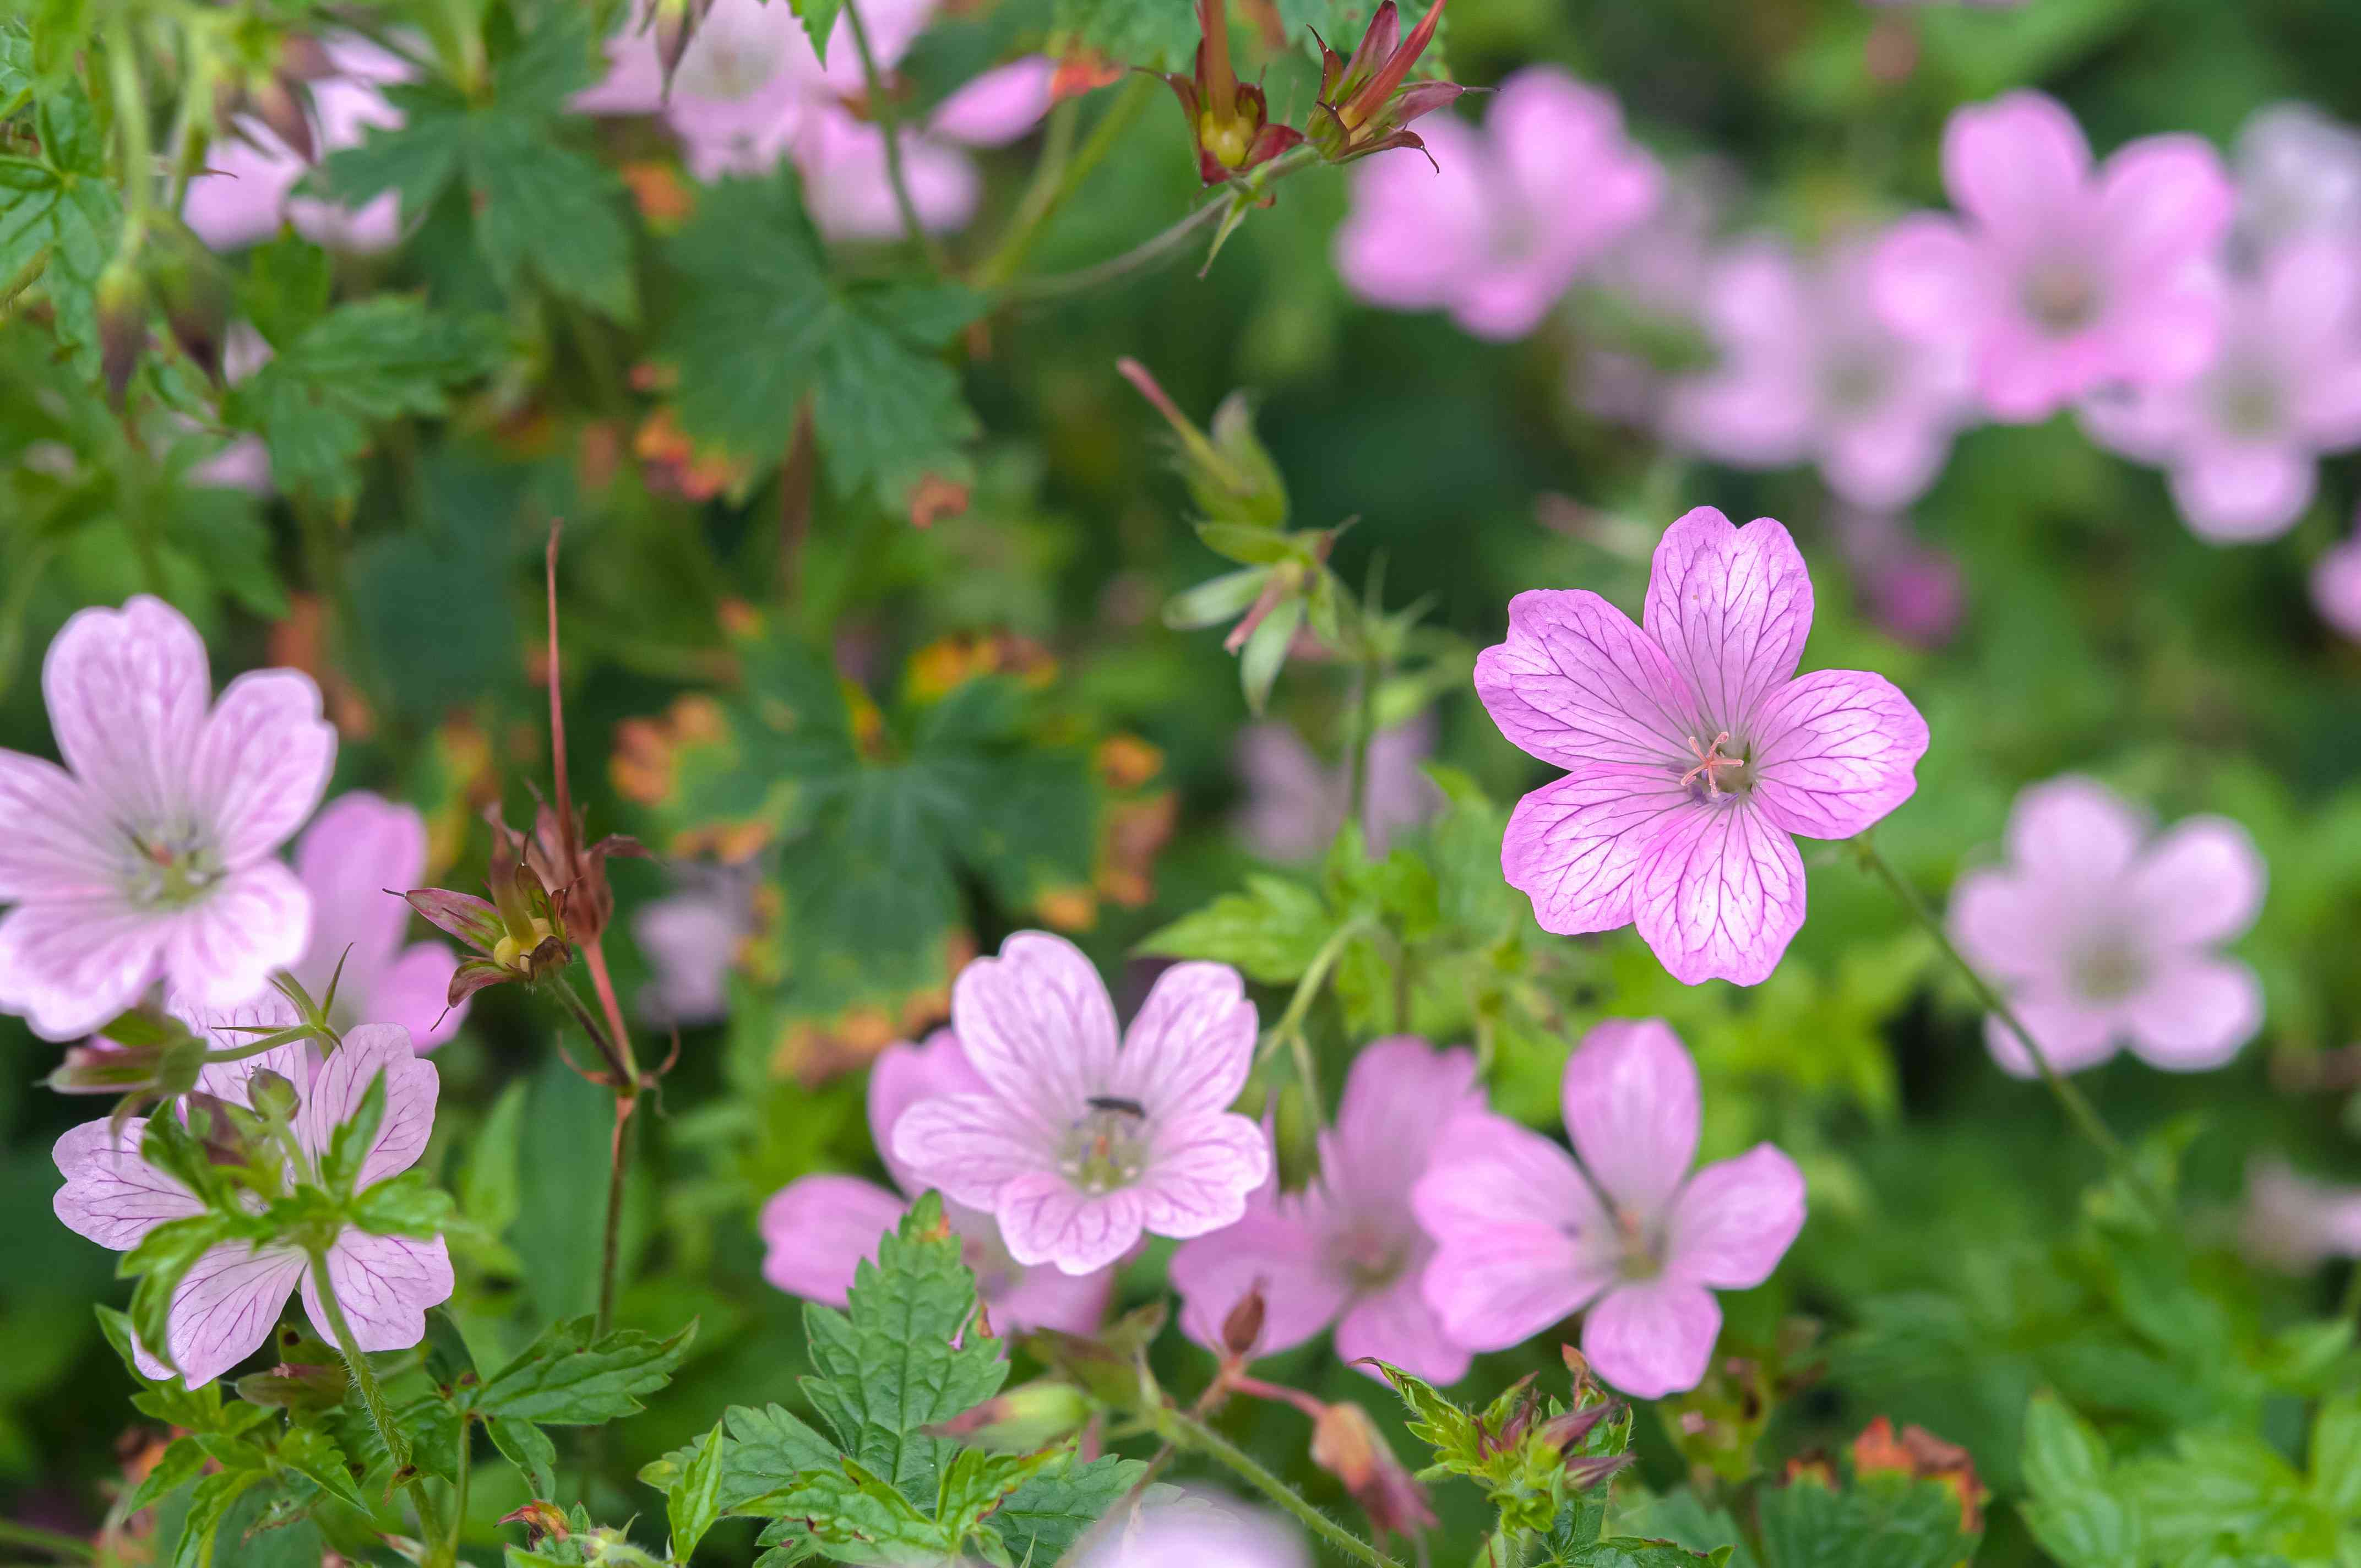 French cranesbill bush stems with small pink cup-like flowers and leaves closeup